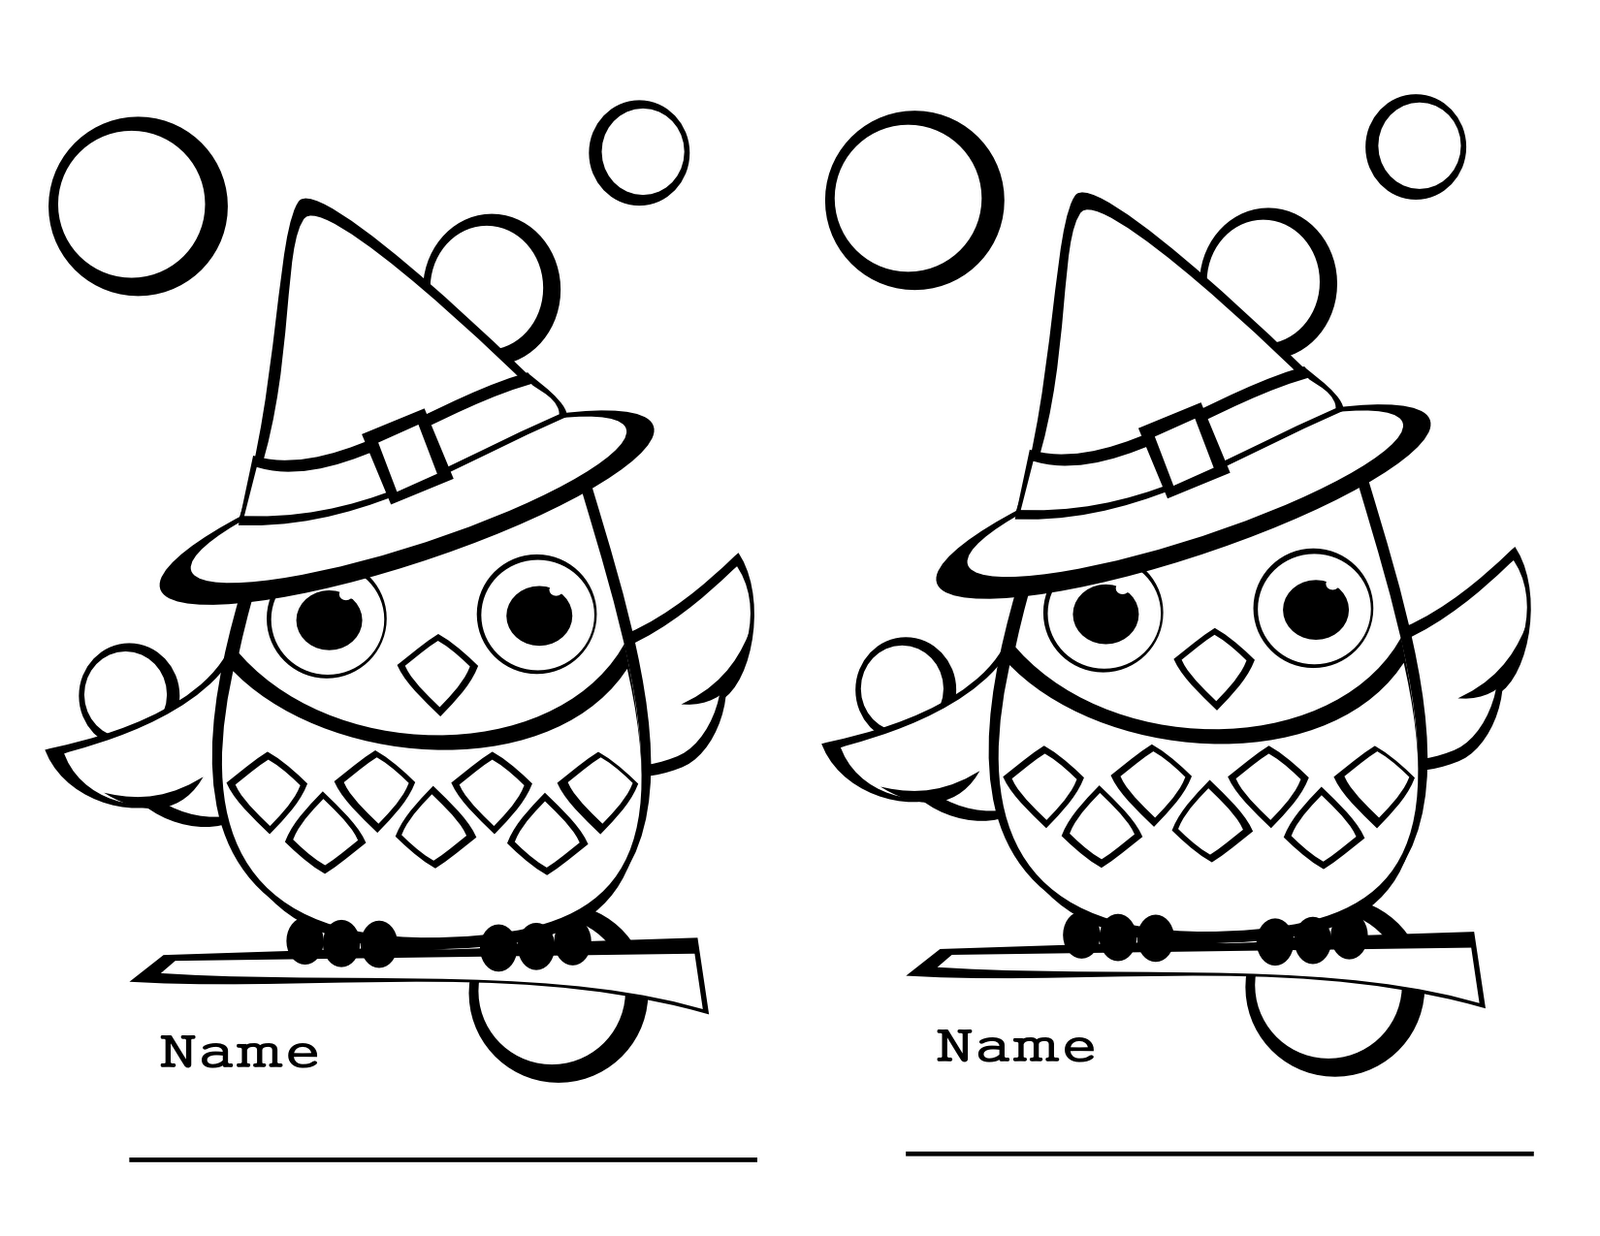 October Coloring Pages To Download And Print For Free